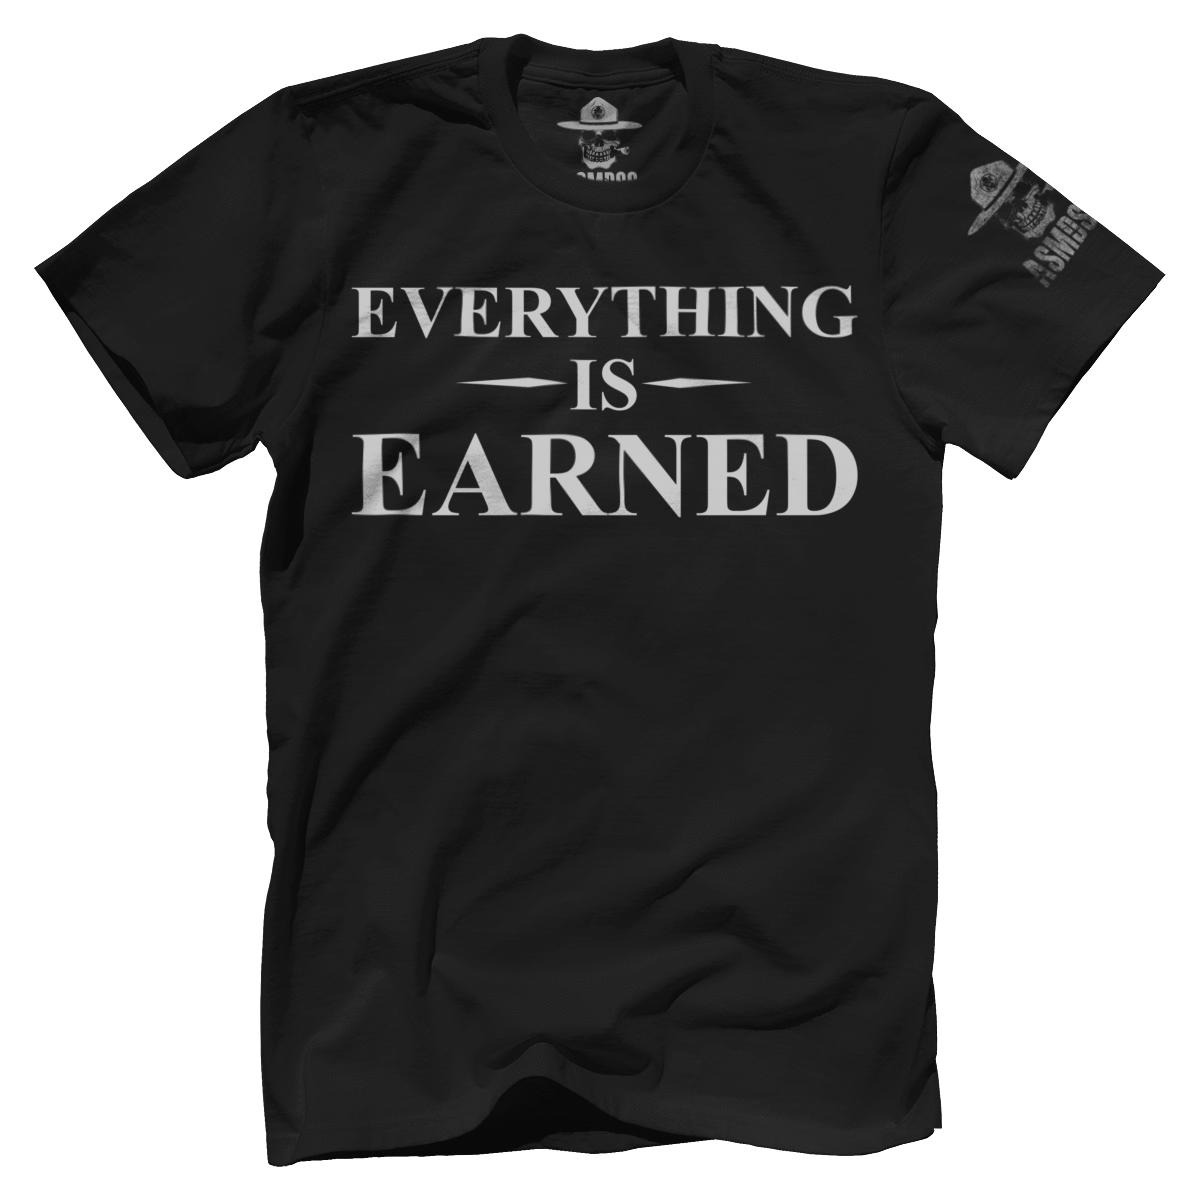 Everything is earned shirt